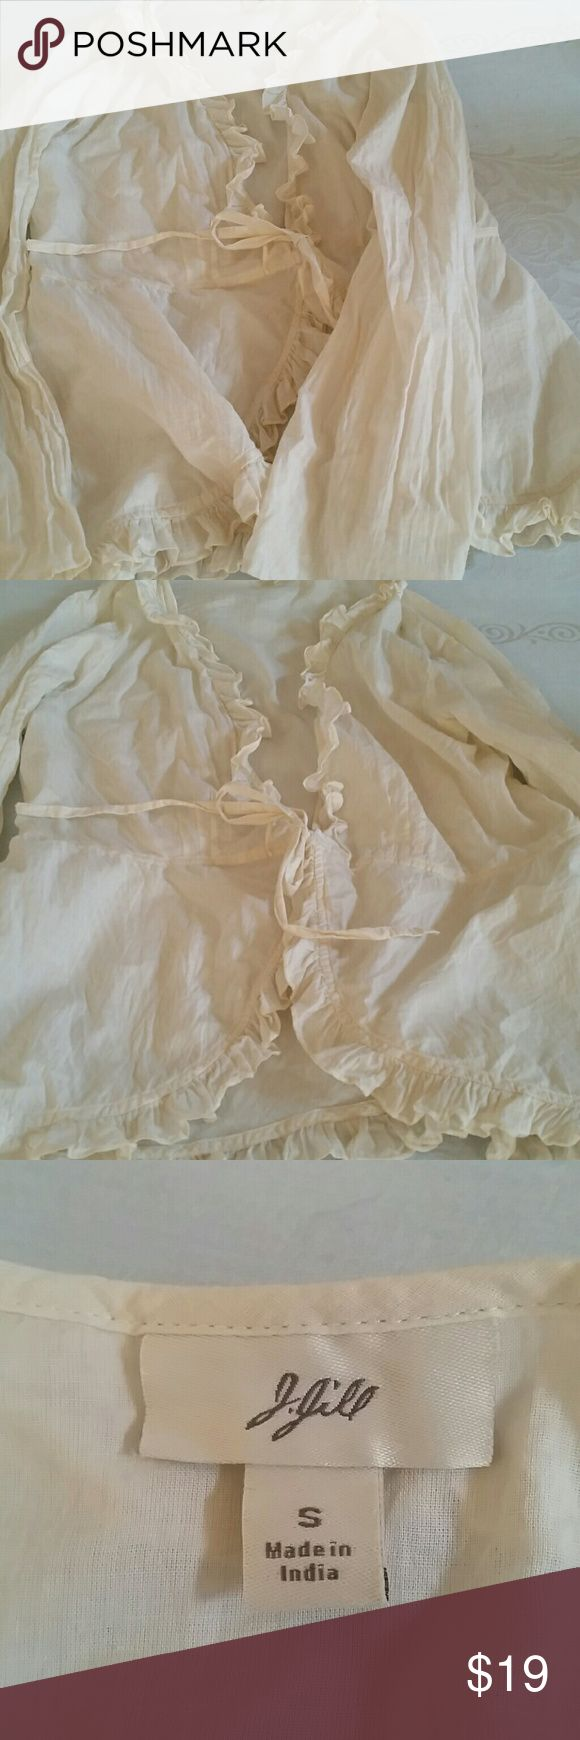 J jill open blouse ties in front mint condition Quality lightweight neutral blouse that is perfect over a tank J Jill Tops Blouses